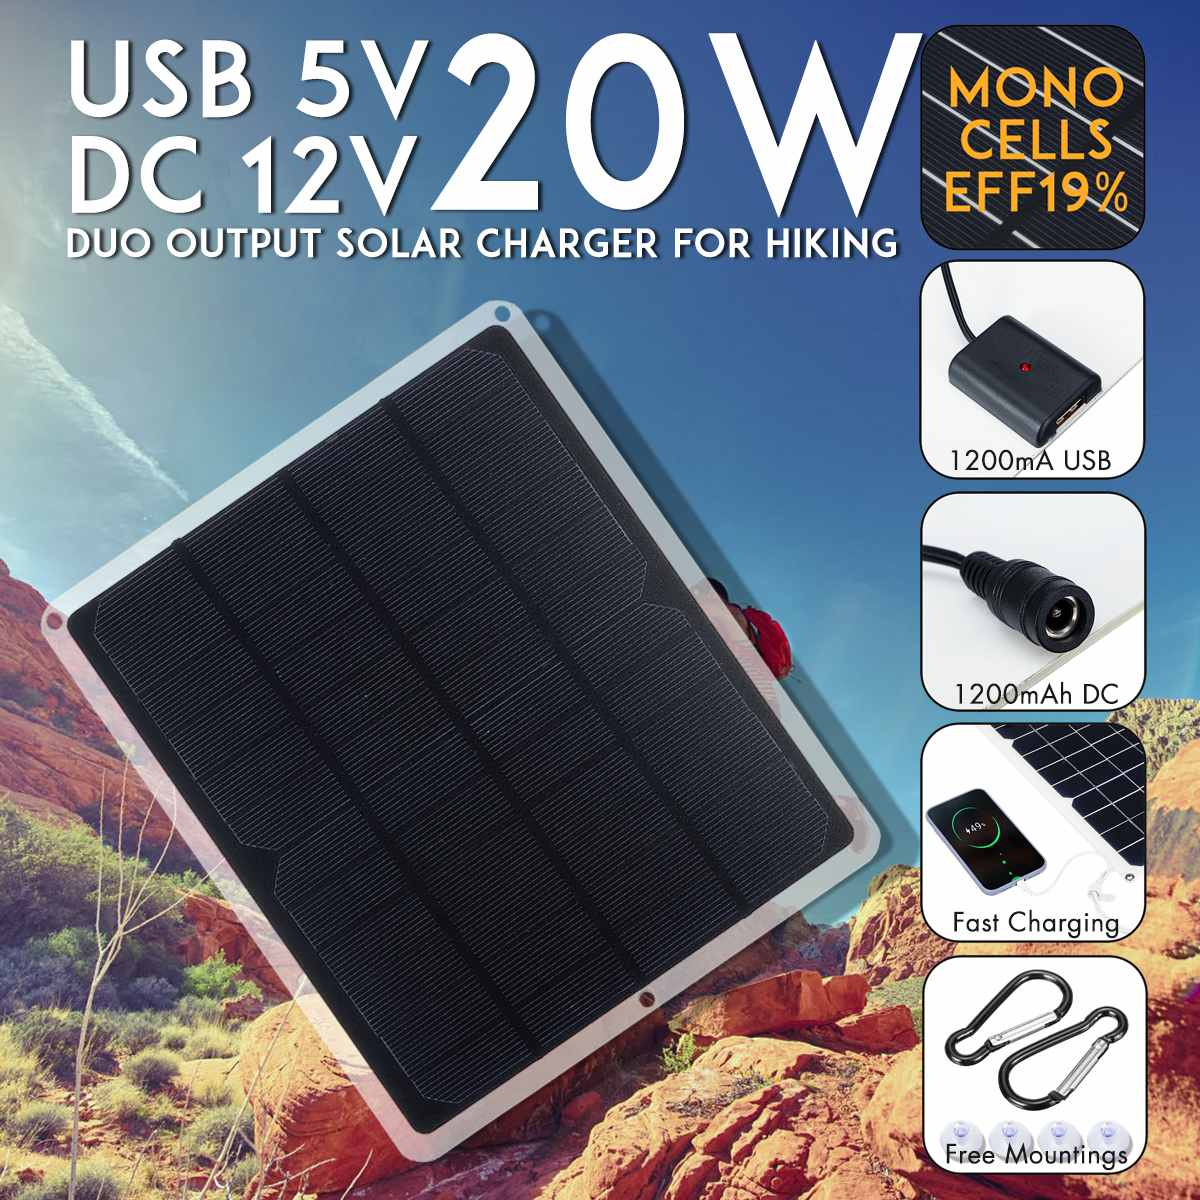 Kinco USB DC 12V 5V Solar Panel 20W Outdoor Portable Solar Cells Fast Soalr Charger For Battery Chargers Cigarette Lighter image